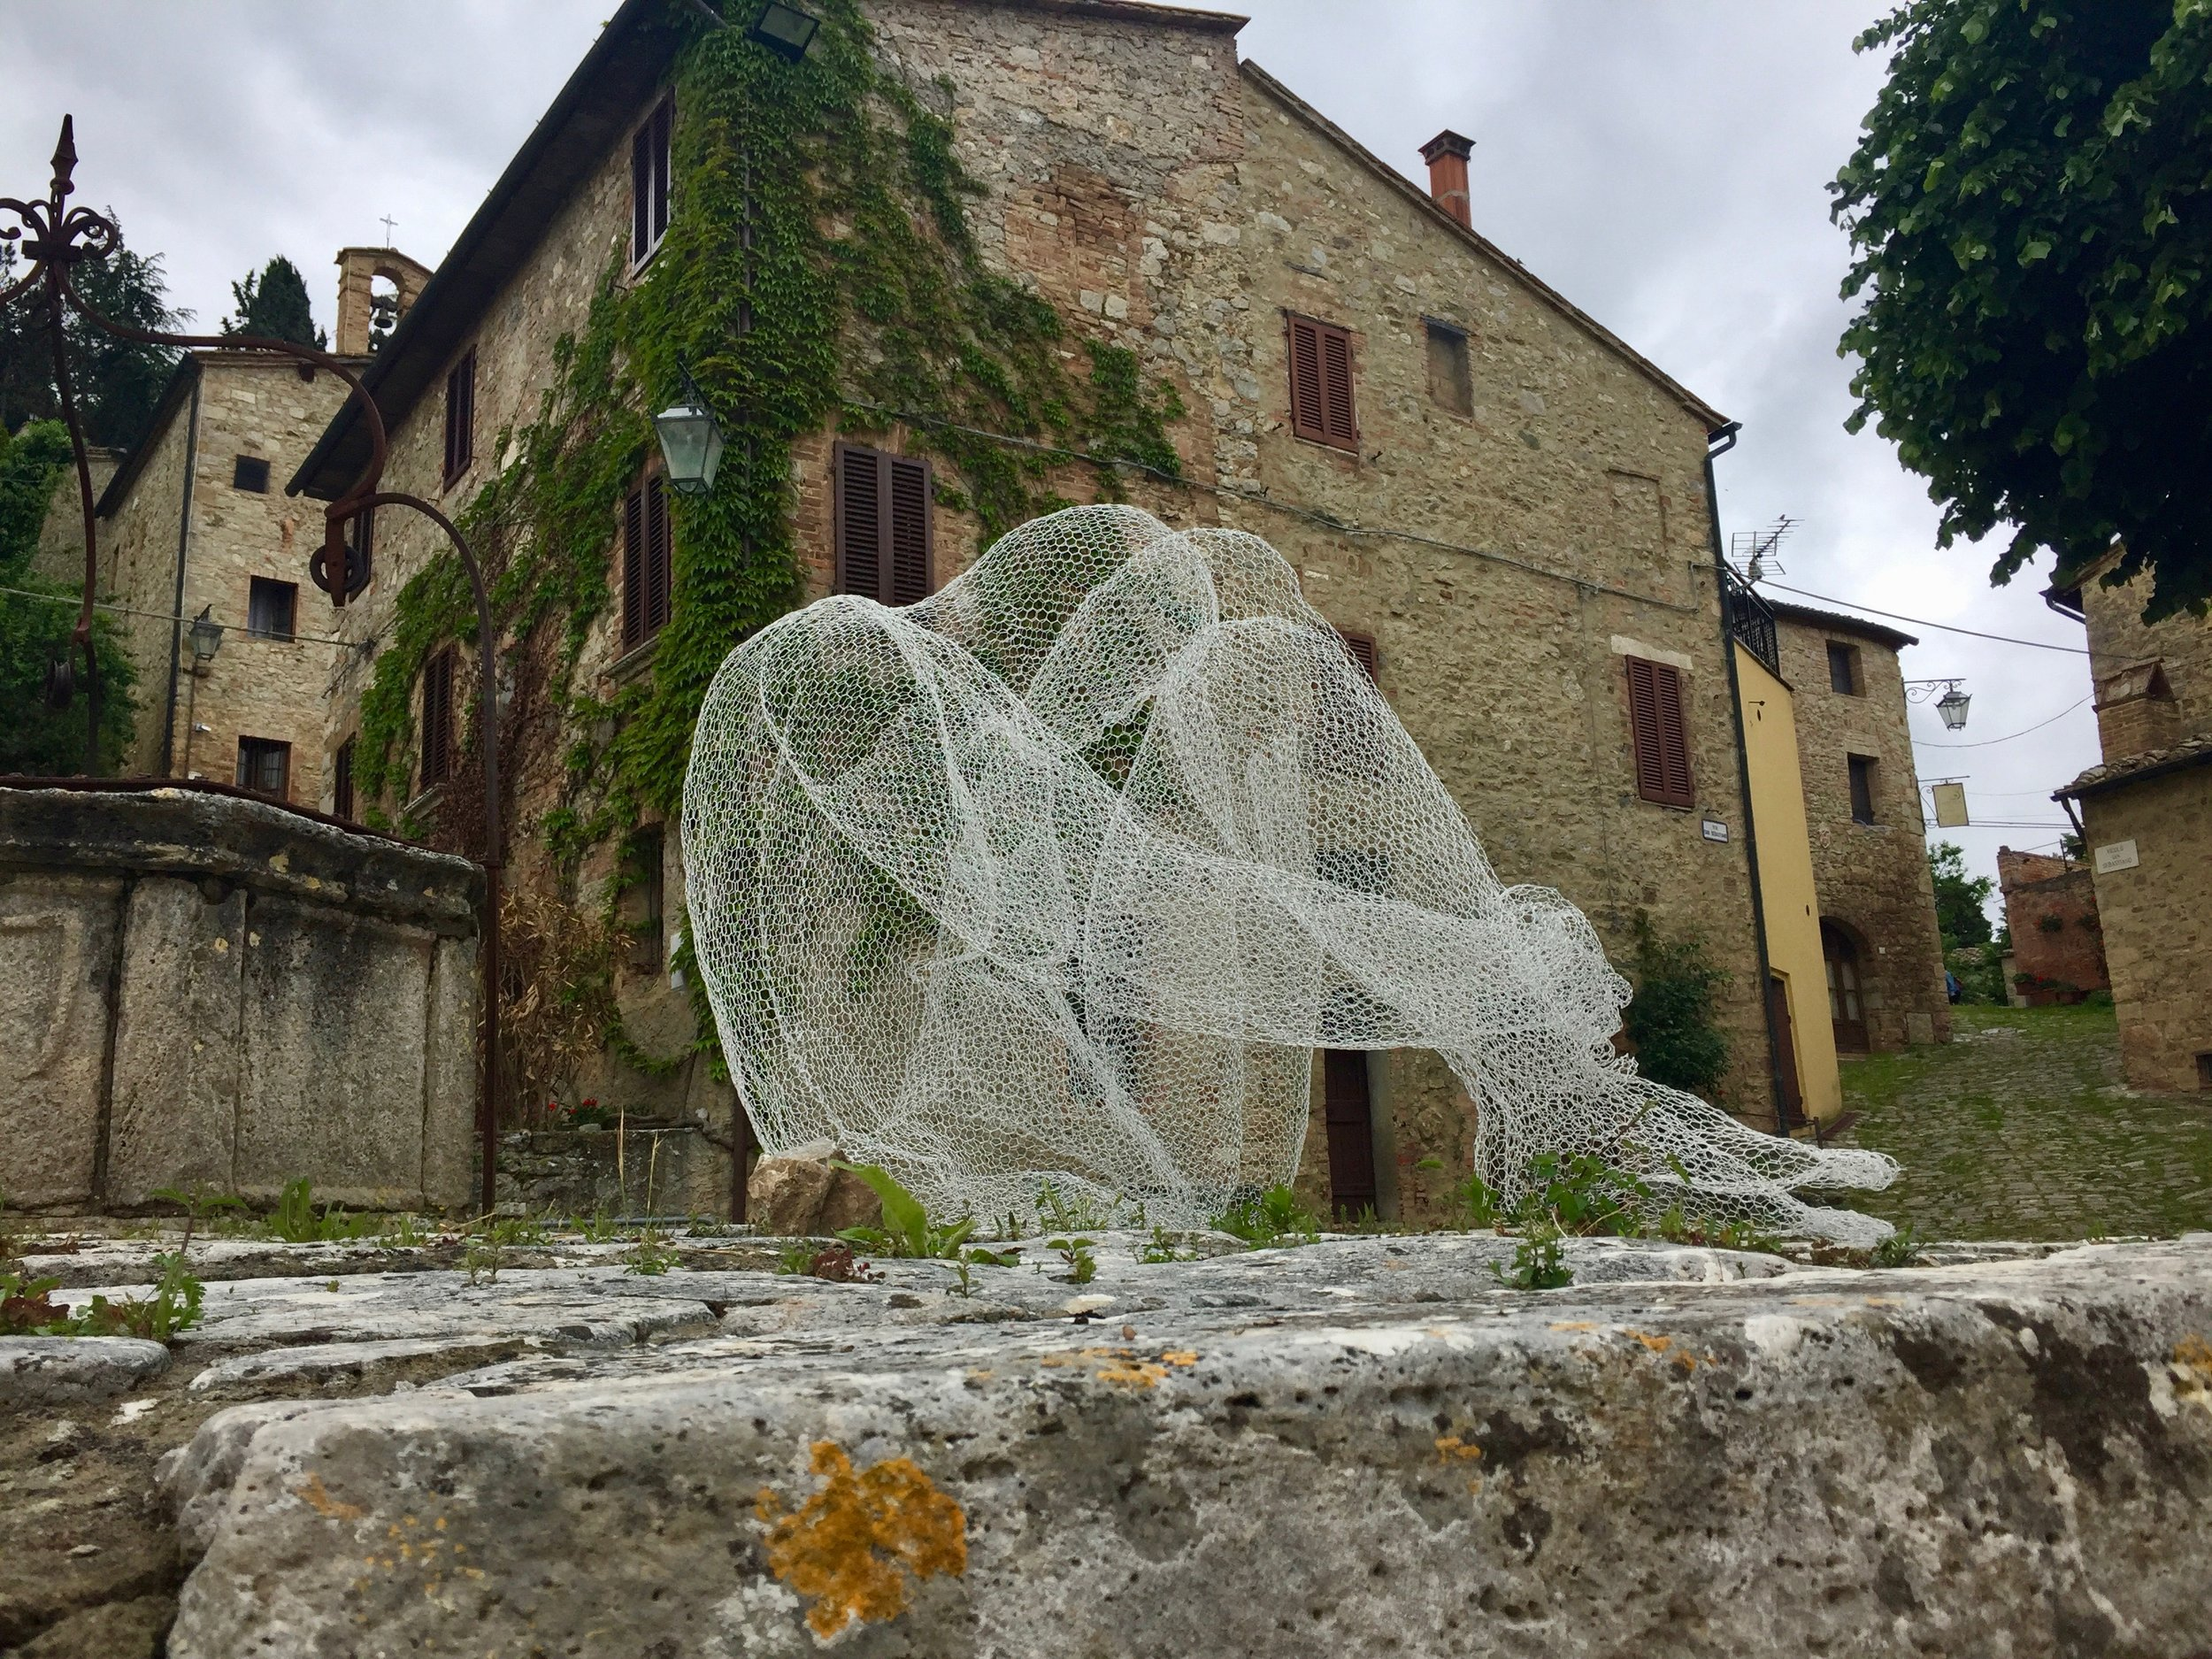 One of the mesh sculptures in Rocca d'Orcia